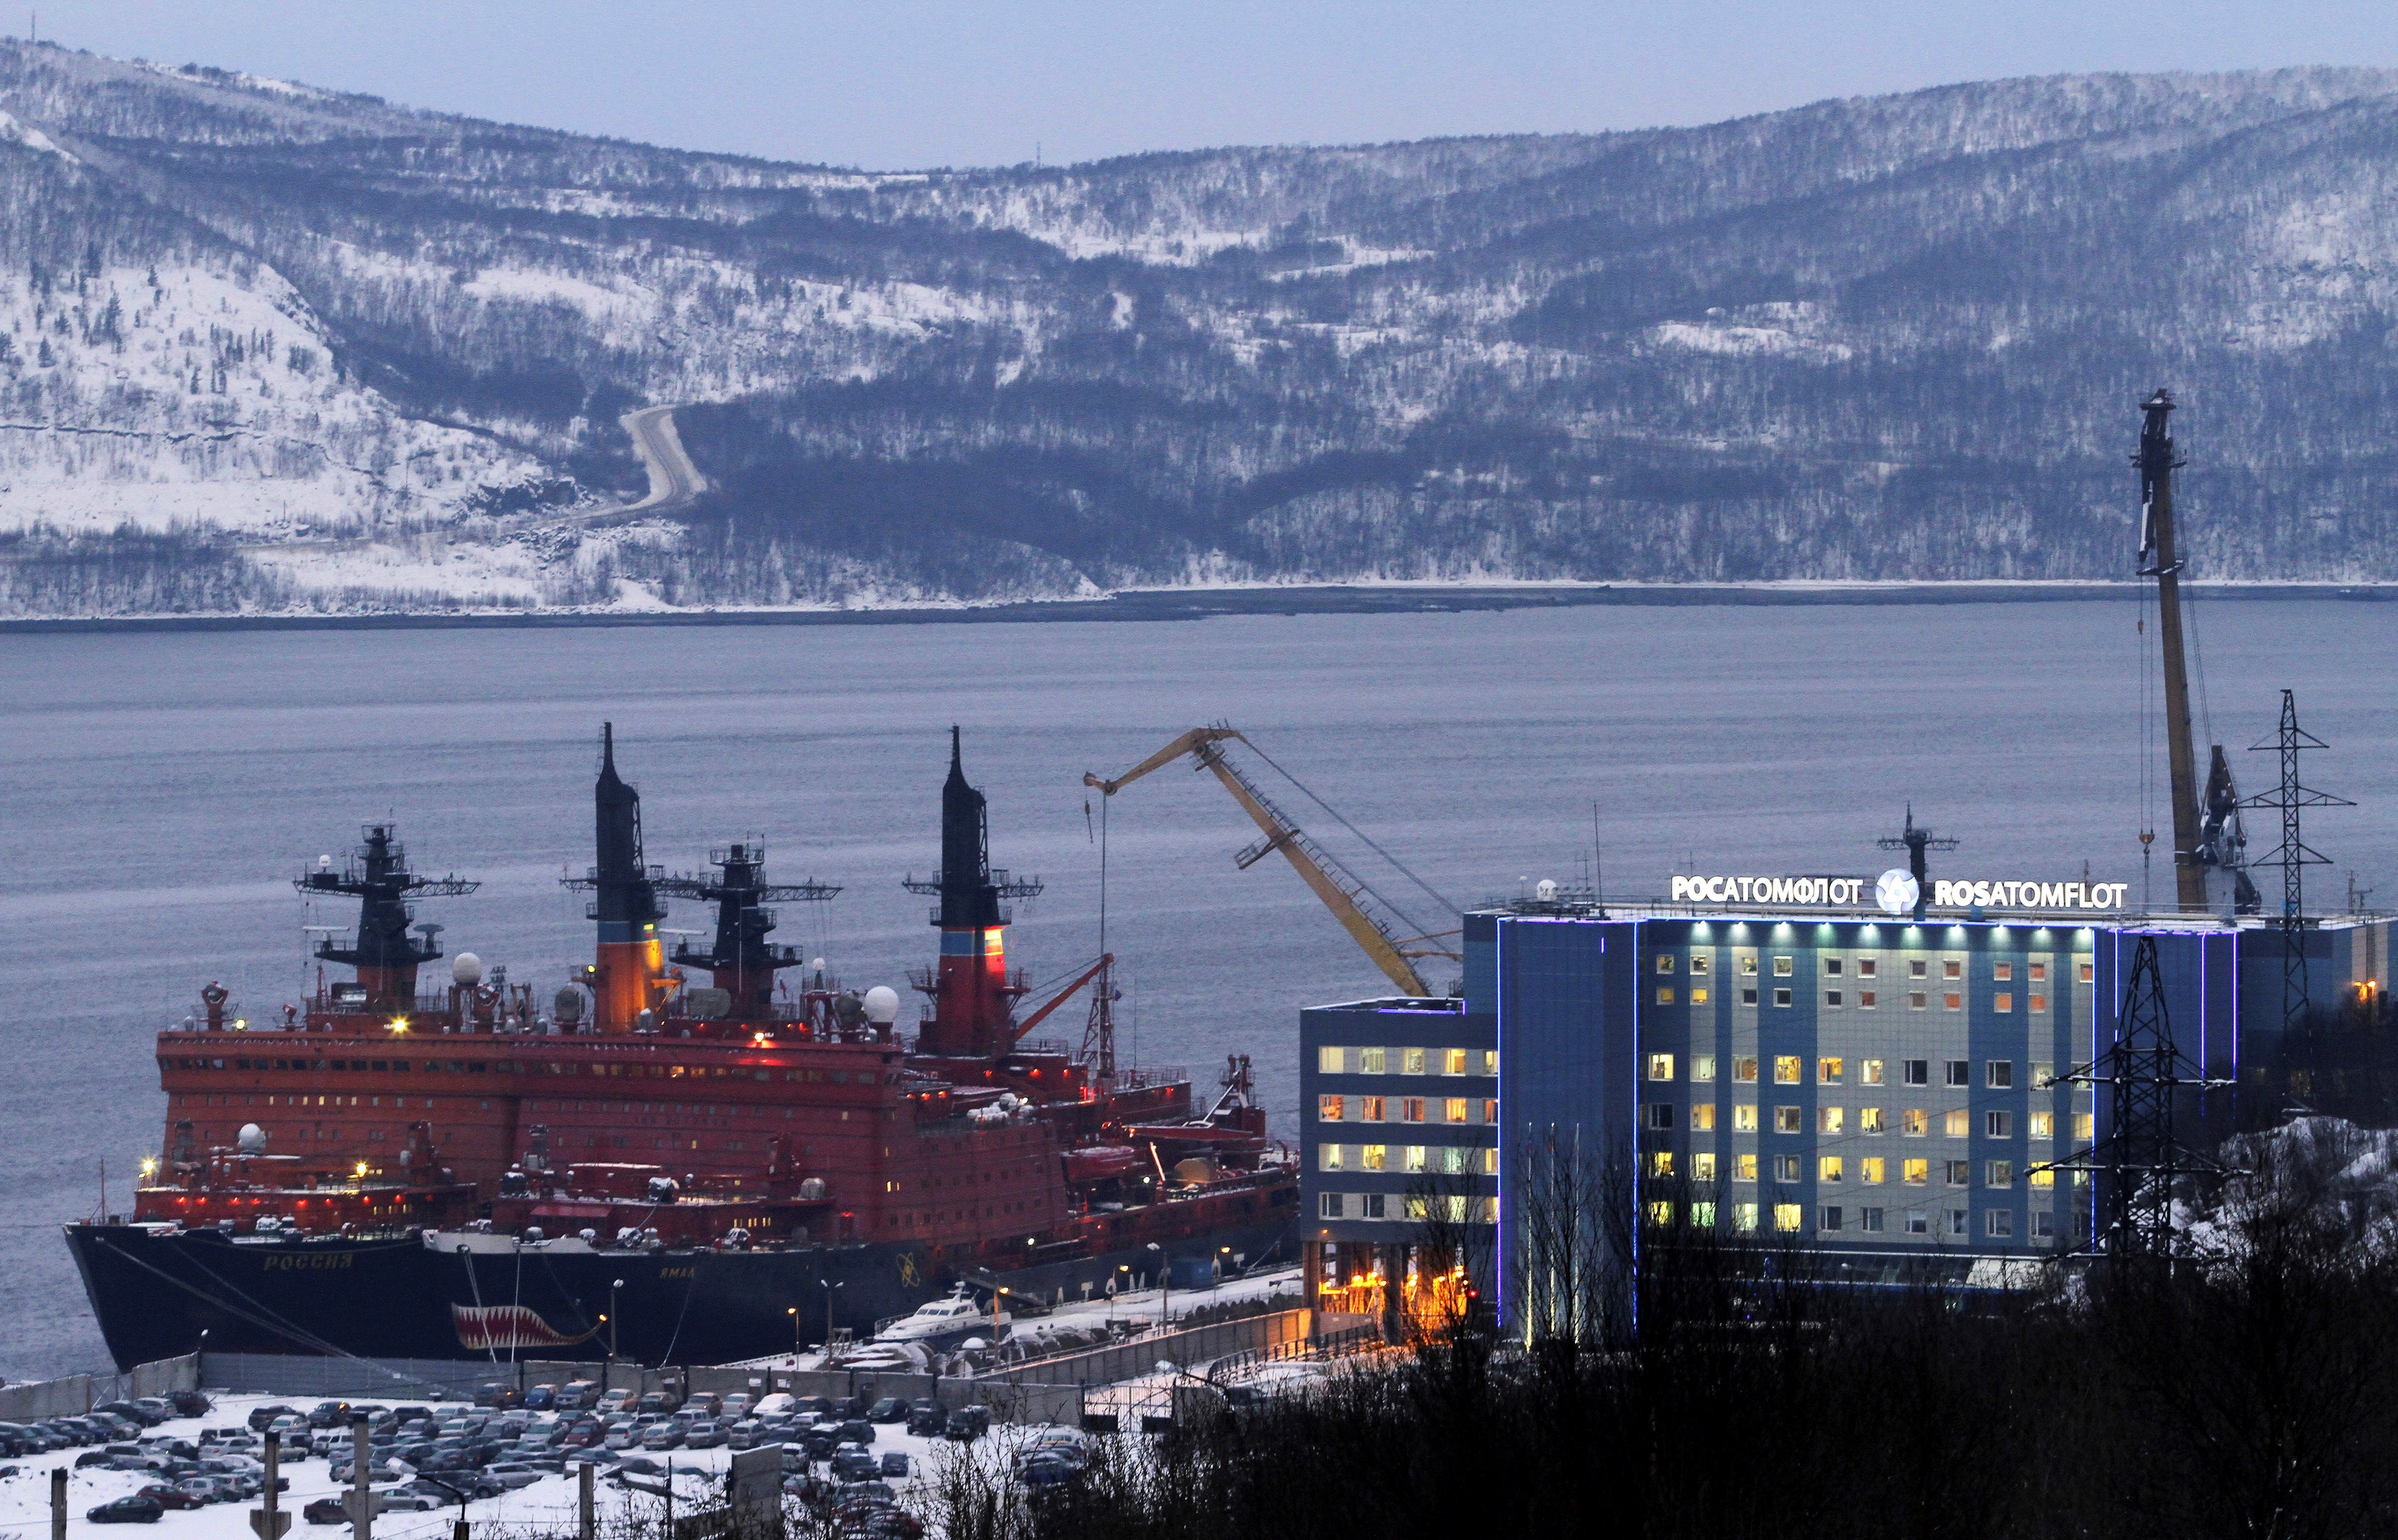 Russian state-owned ships are now subject to Northern Sea Route general regulations